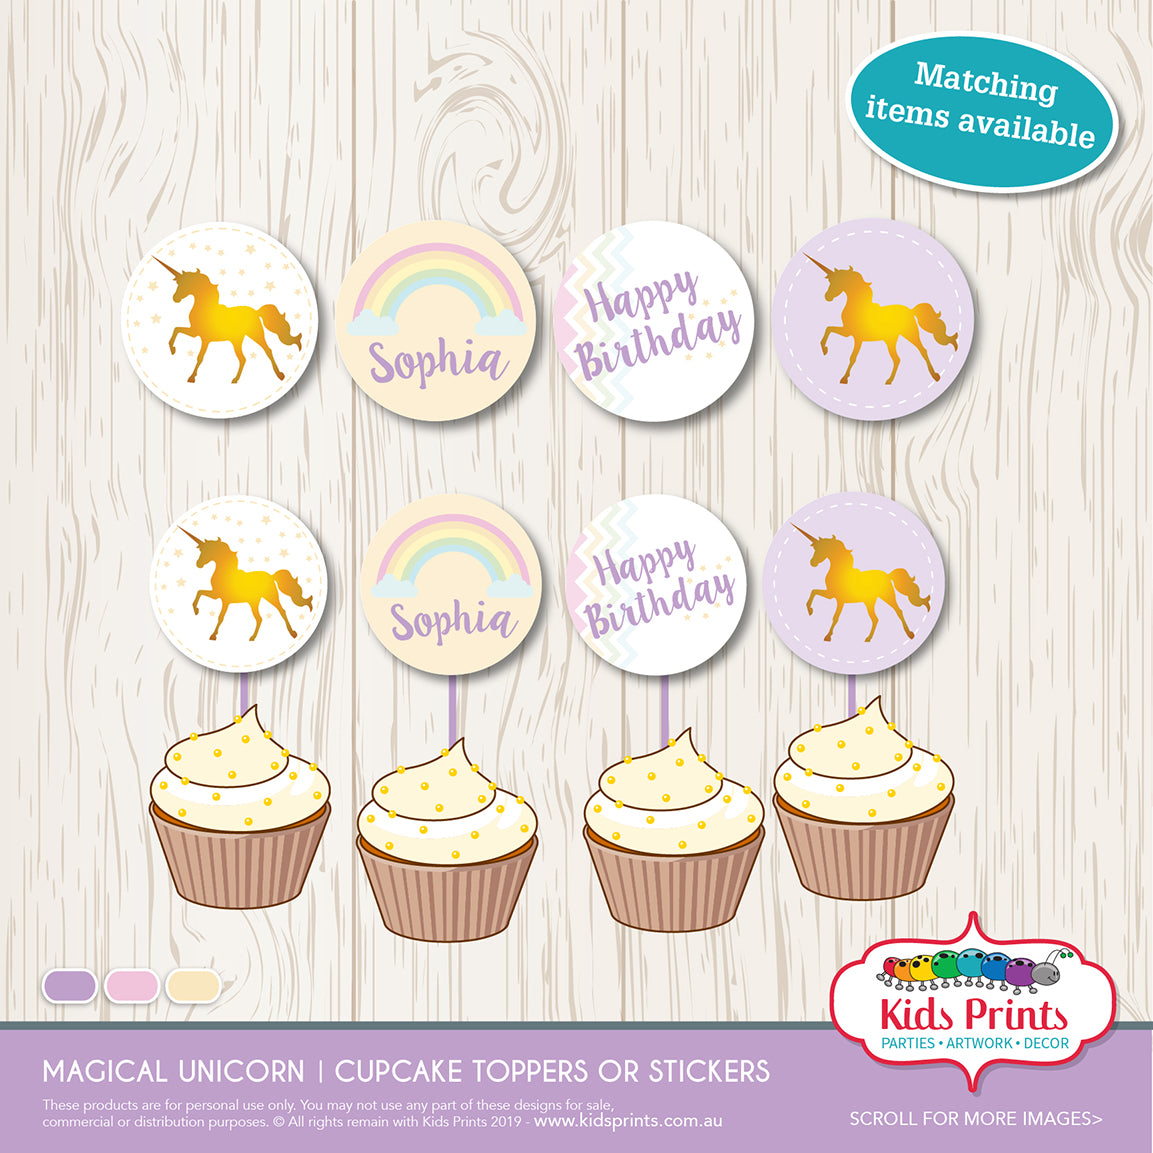 Magical Unicorn Party | Circle Cupcake Toppers | Stickers - Kids Prints Online - kids wall art printable - nursery art printable - printable invitations - digital invitations - kids wall art - kids prints